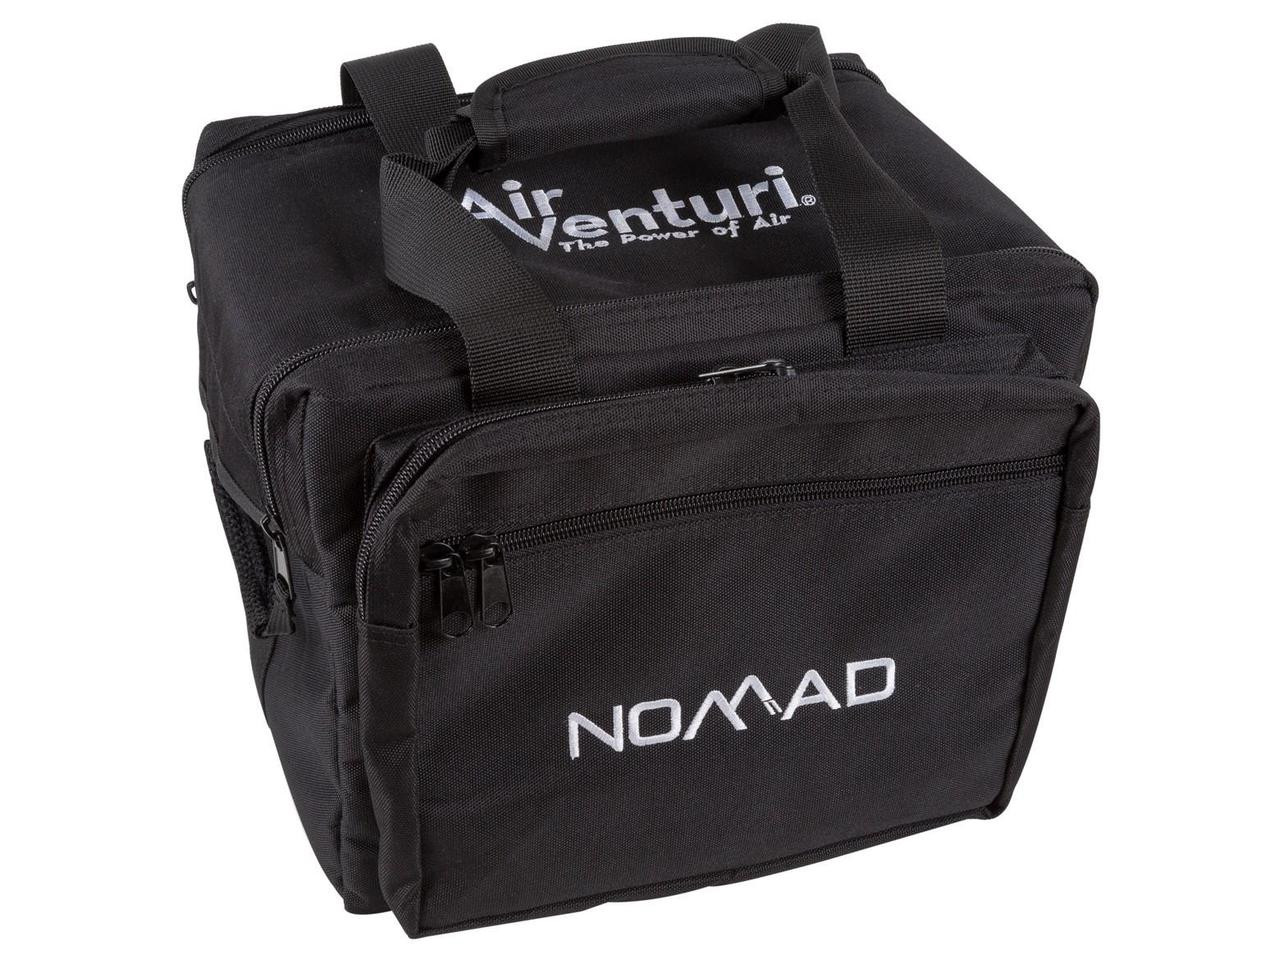 Air Venturi Nomad II Portable Compressor